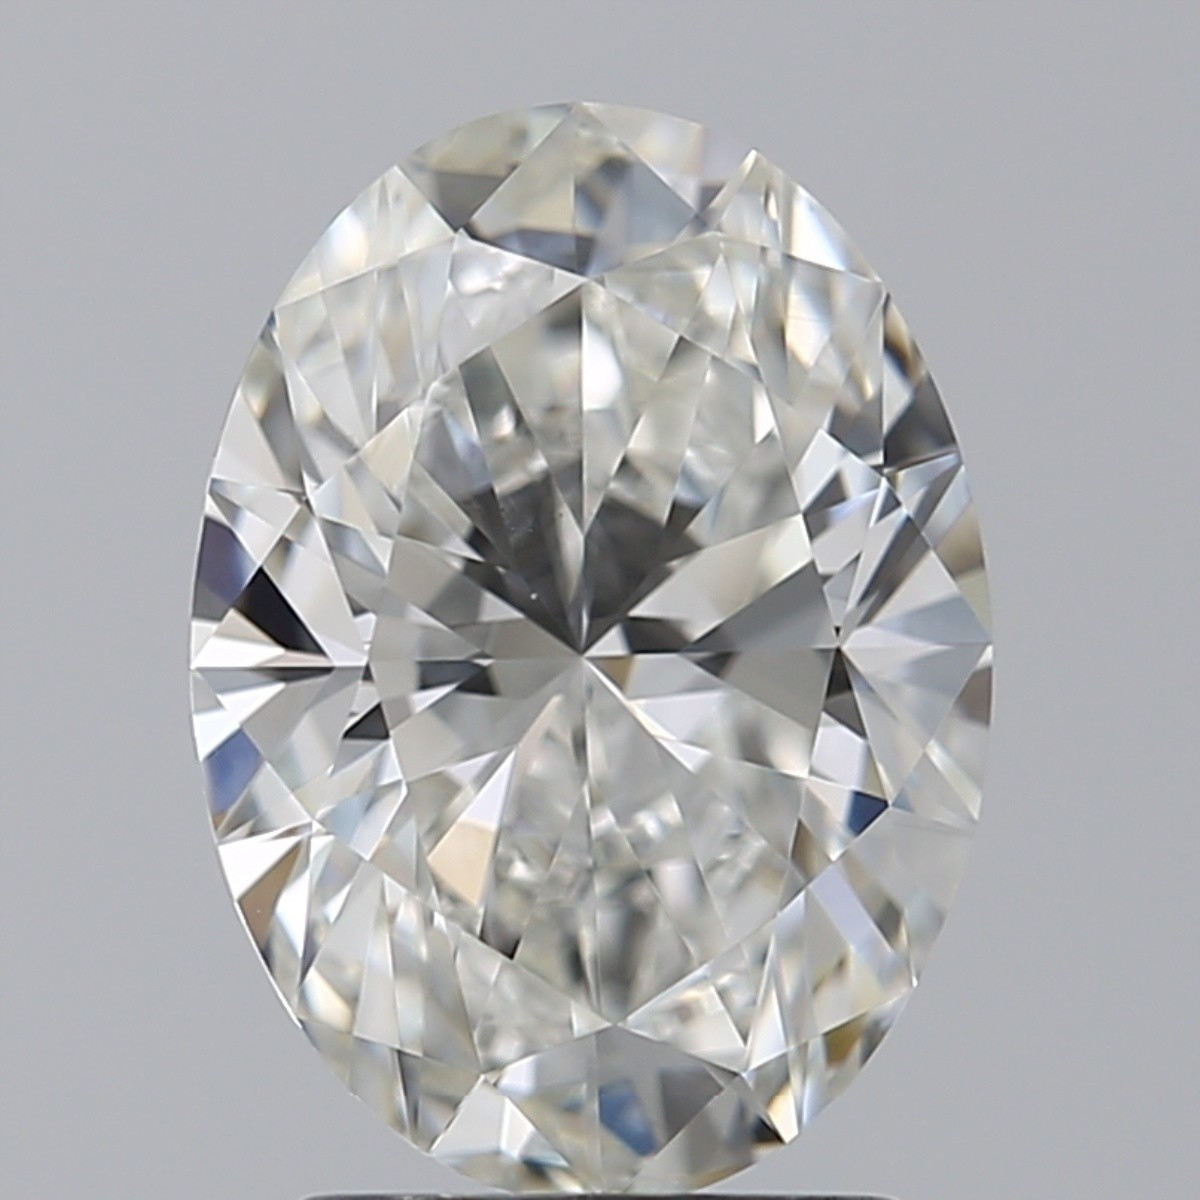 2.03 Carat Oval Diamond (H/VS1)